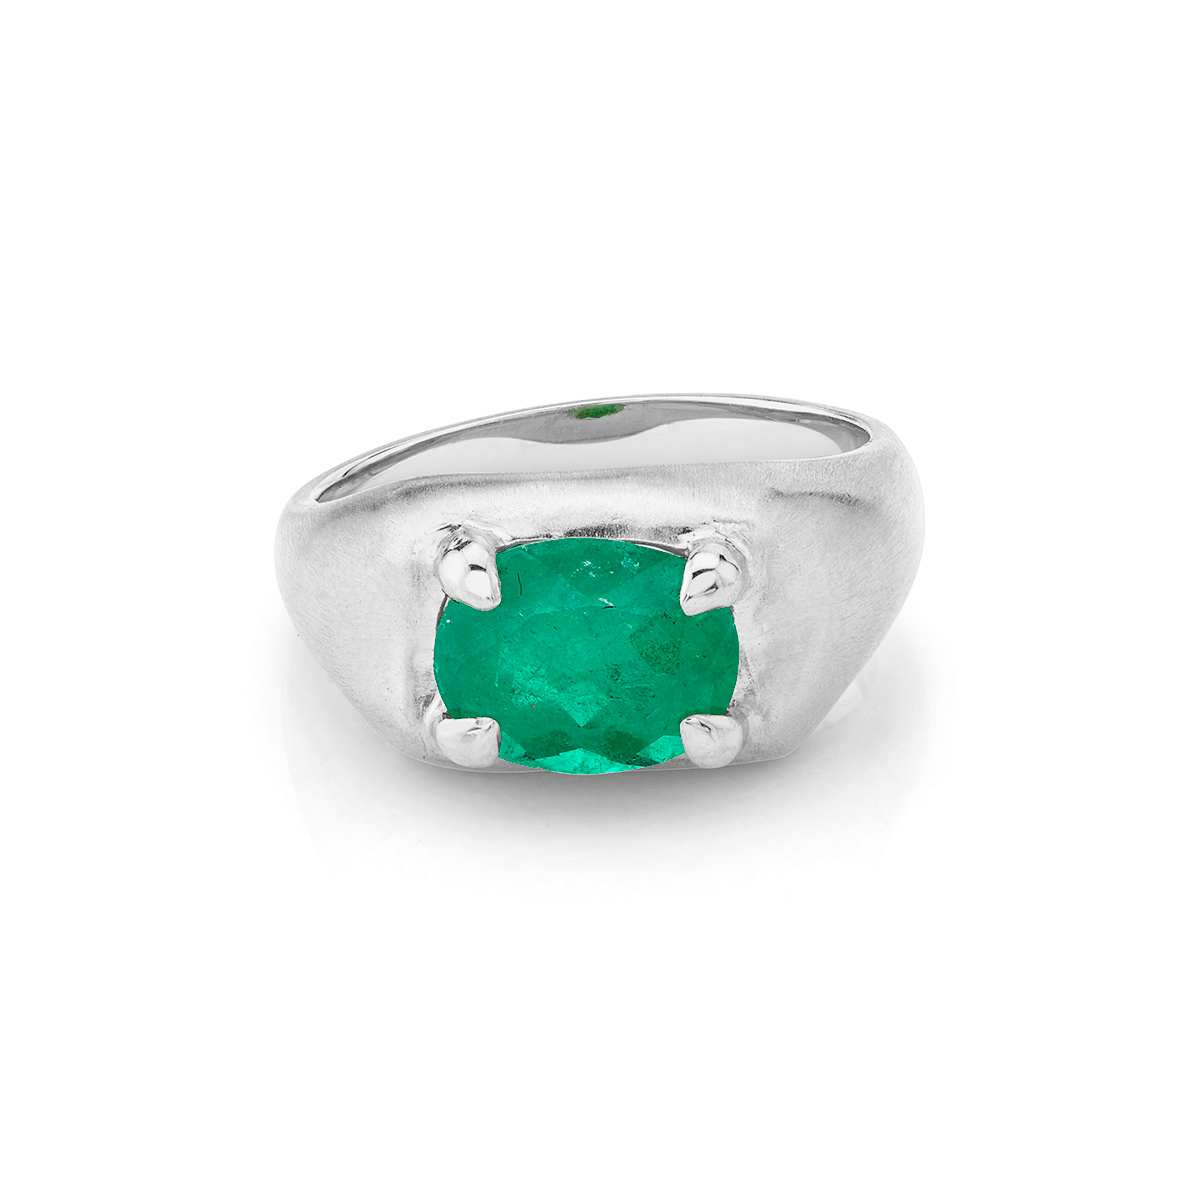 NEW! Oracle Ring with Oval Emerald Center